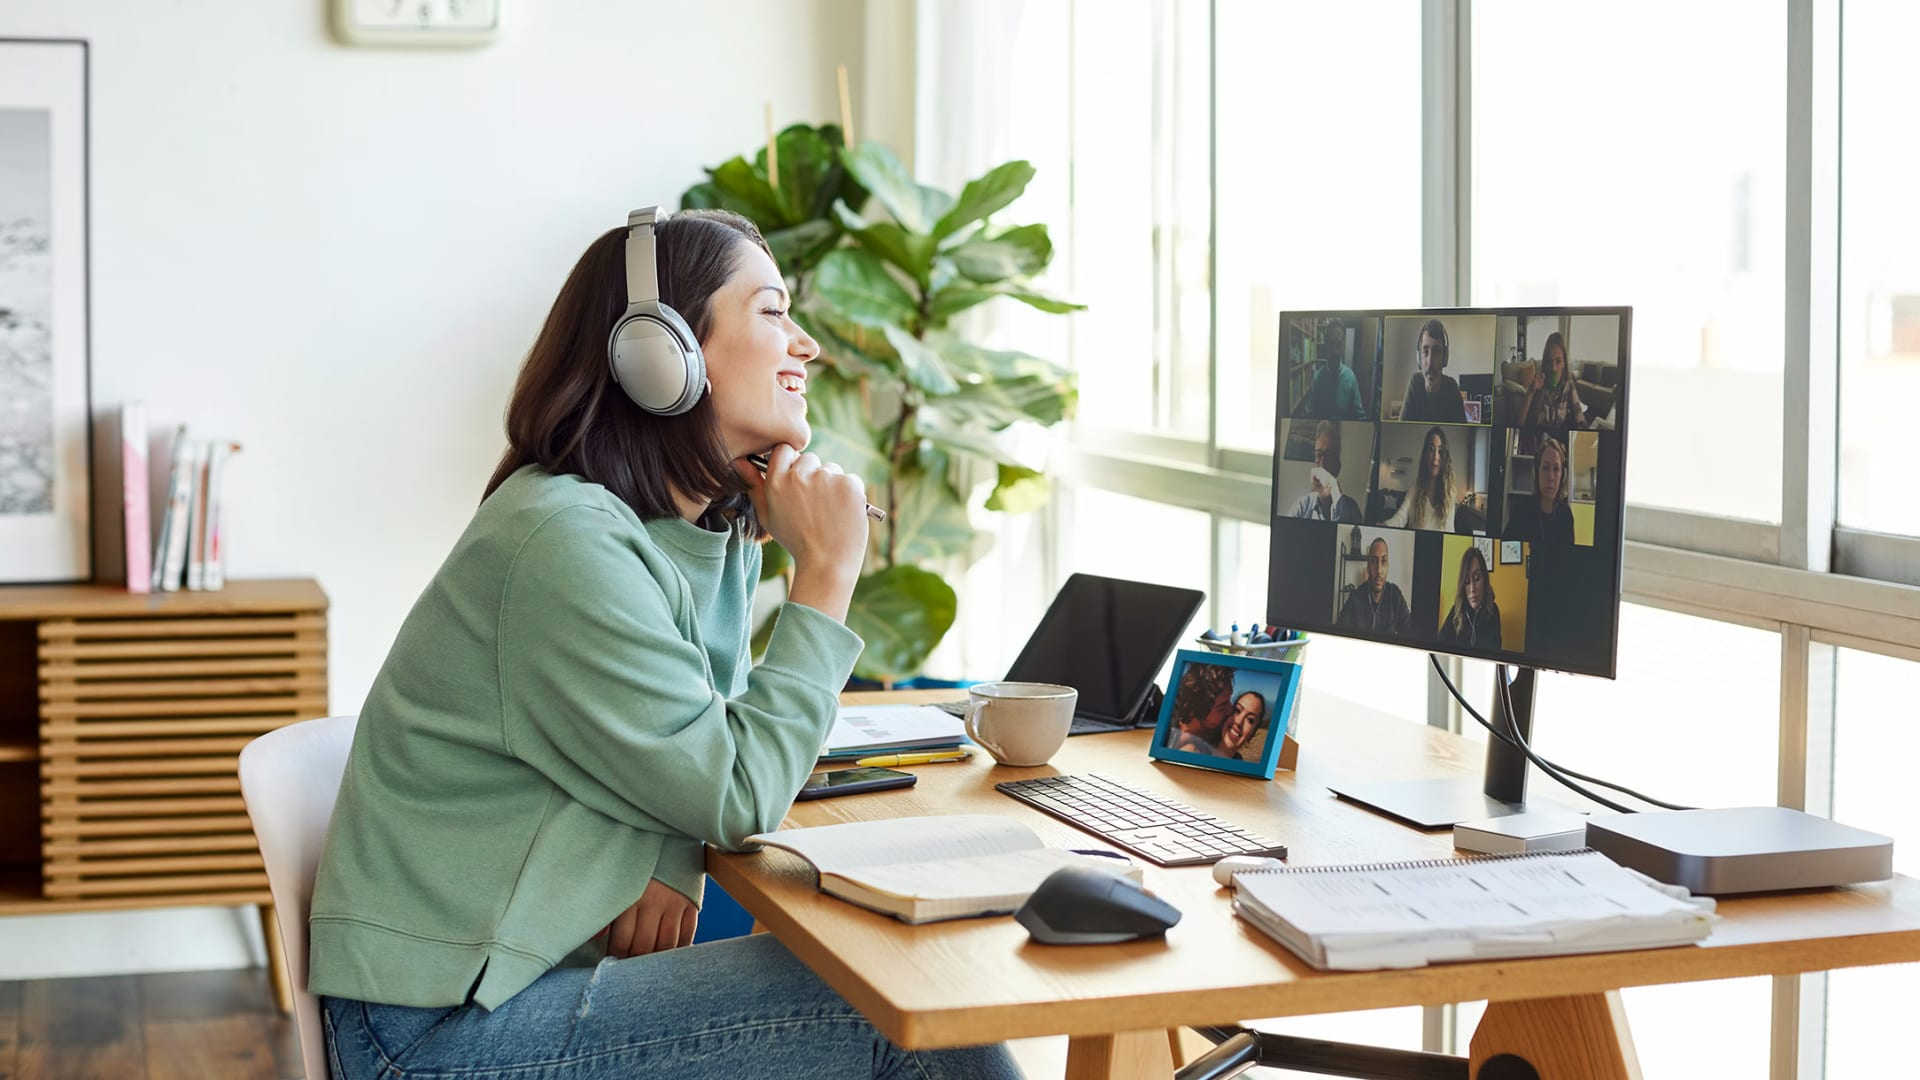 New Survey: 61 Percent of Americans Would Take a Pay Cut to Keep Working Remotely